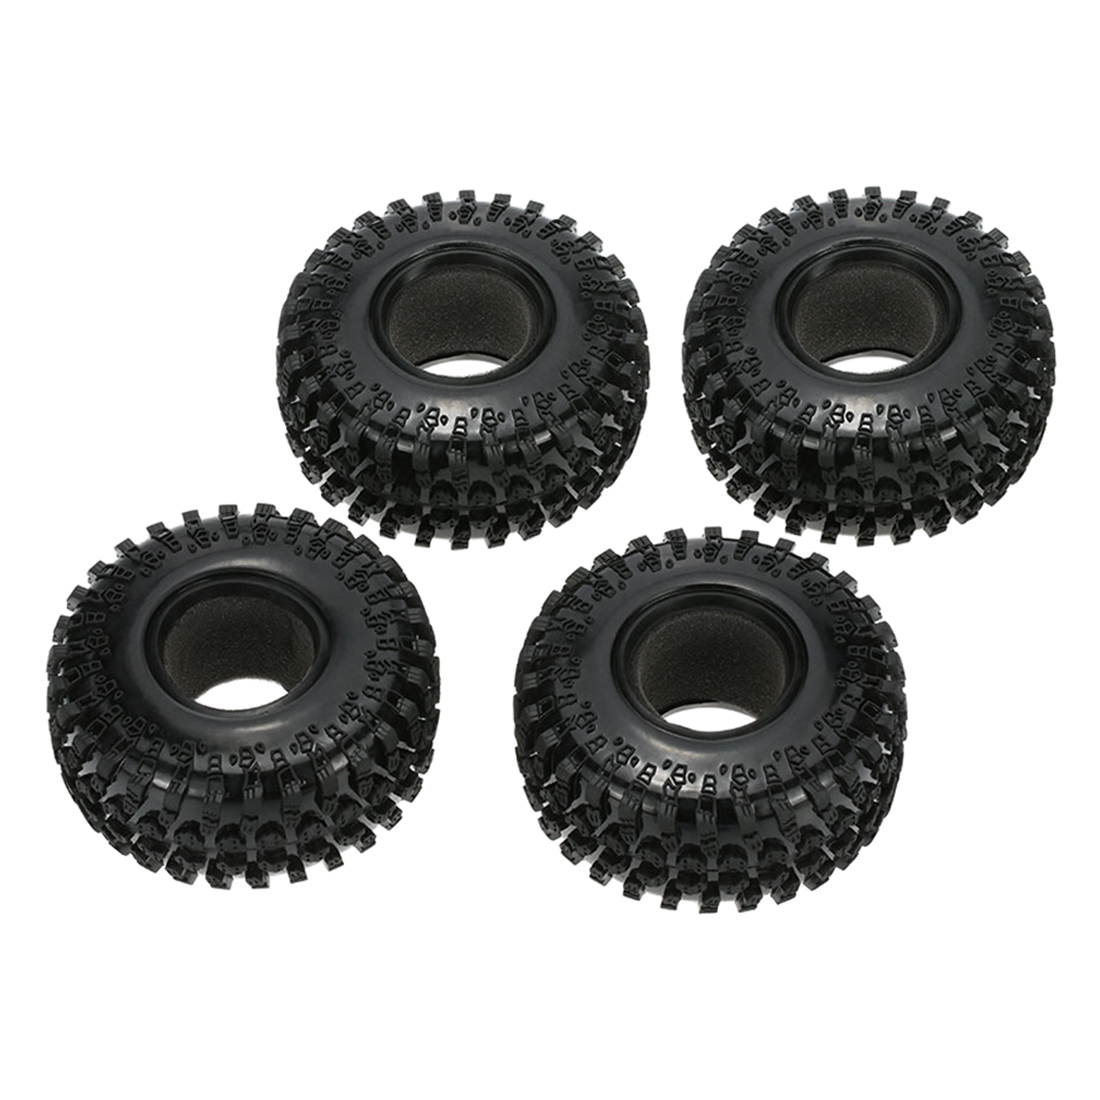 4 X 2.2 125mm 1/10 Scale Tires for RC4WD Axial SCX10 RC Rock Crawler